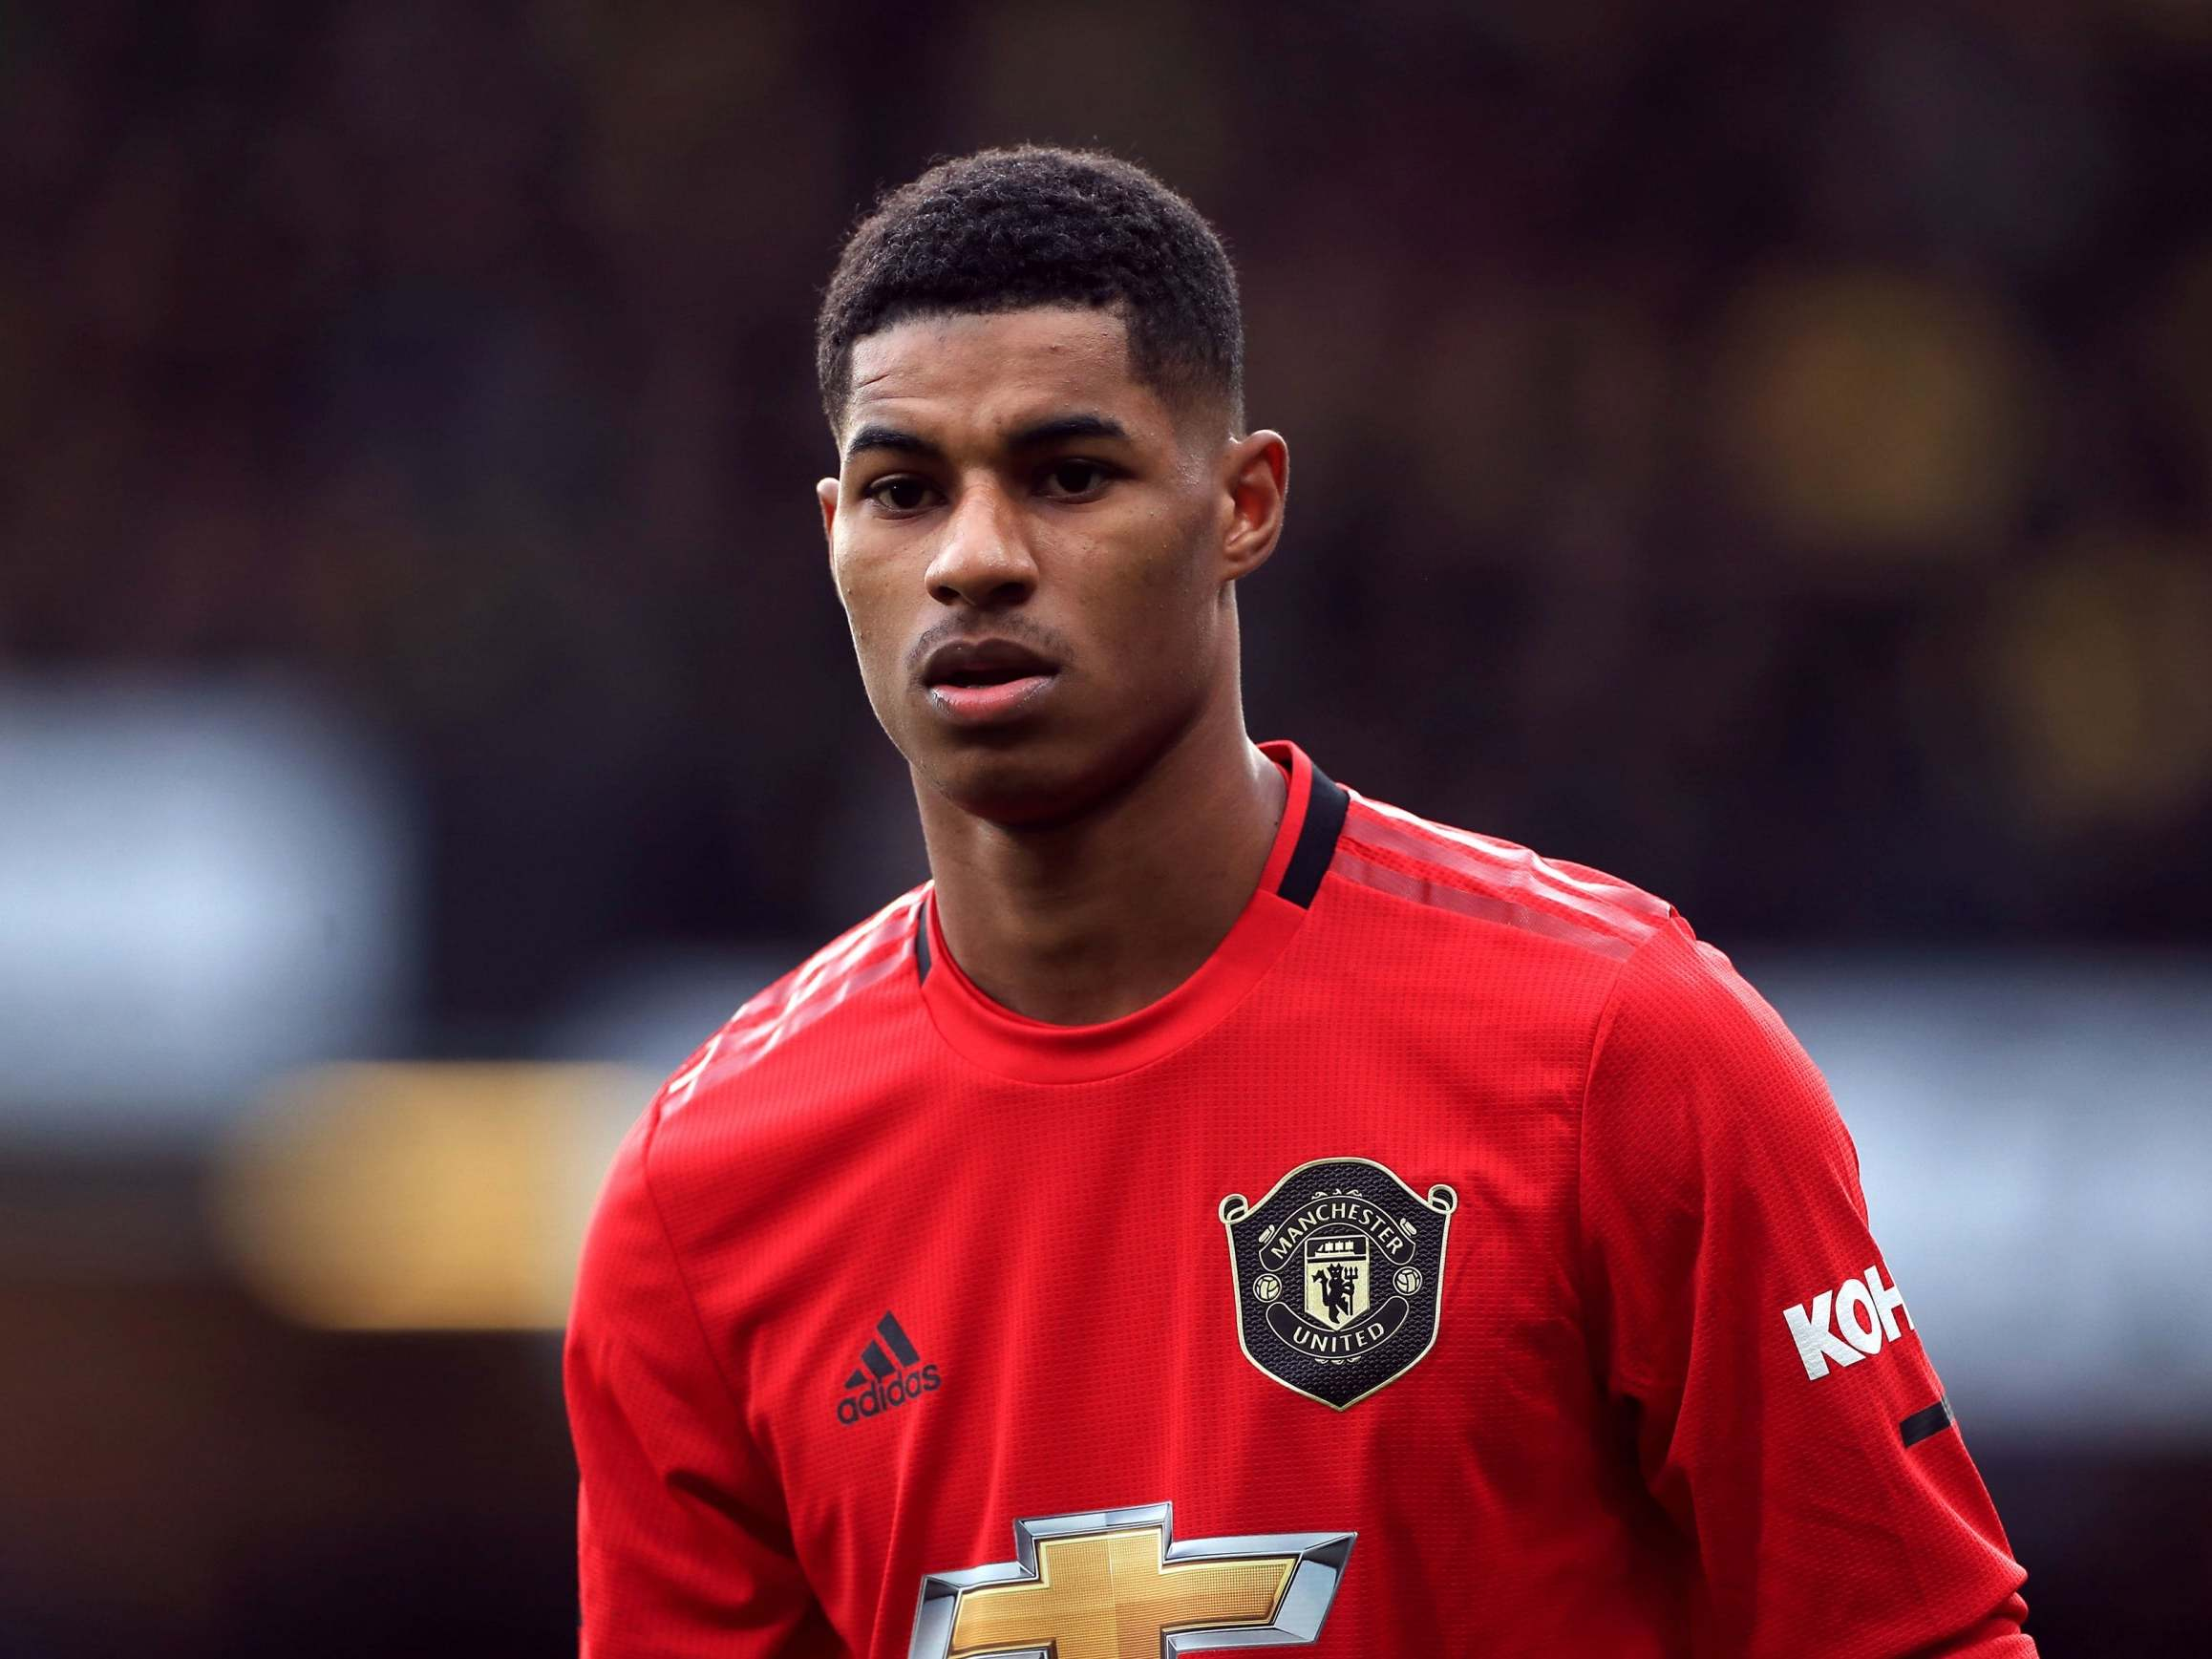 Rashford becomes youngest recipient of honorary degree from University of Manchester